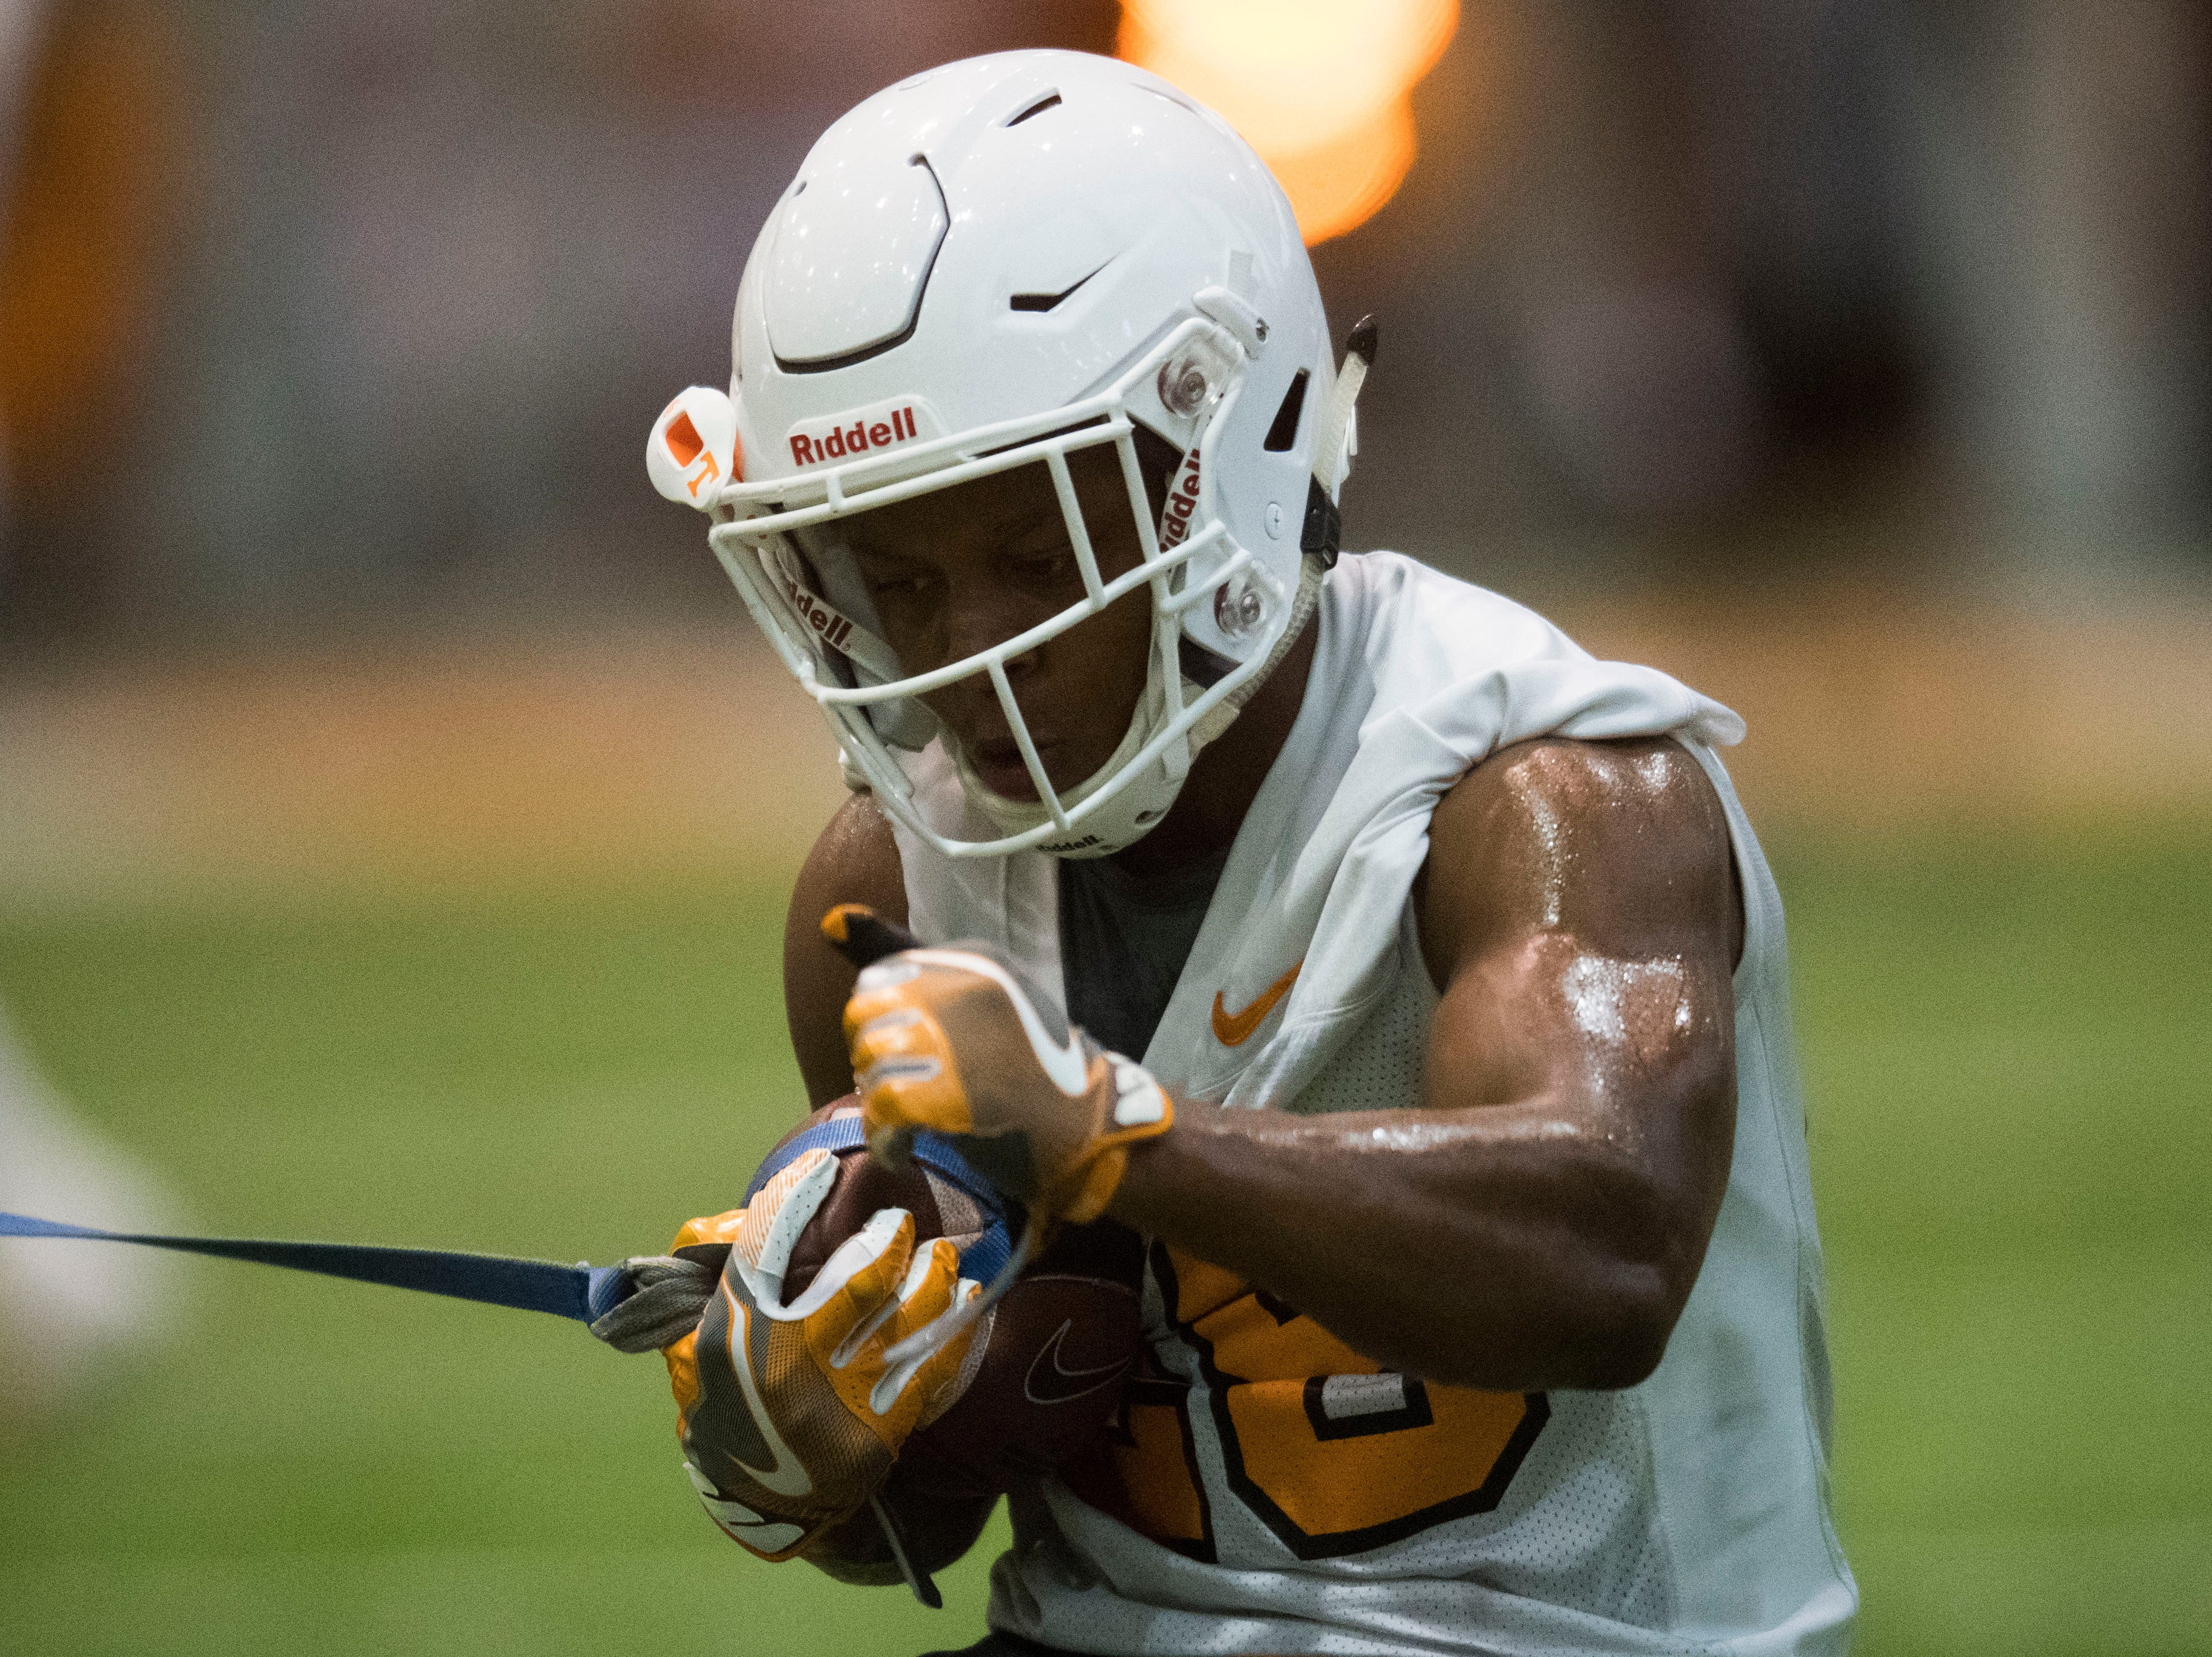 Tennessee running back James Christian (28) runs with the ball during UT Vols preseason football practice Wednesday, Aug. 8, 2018.